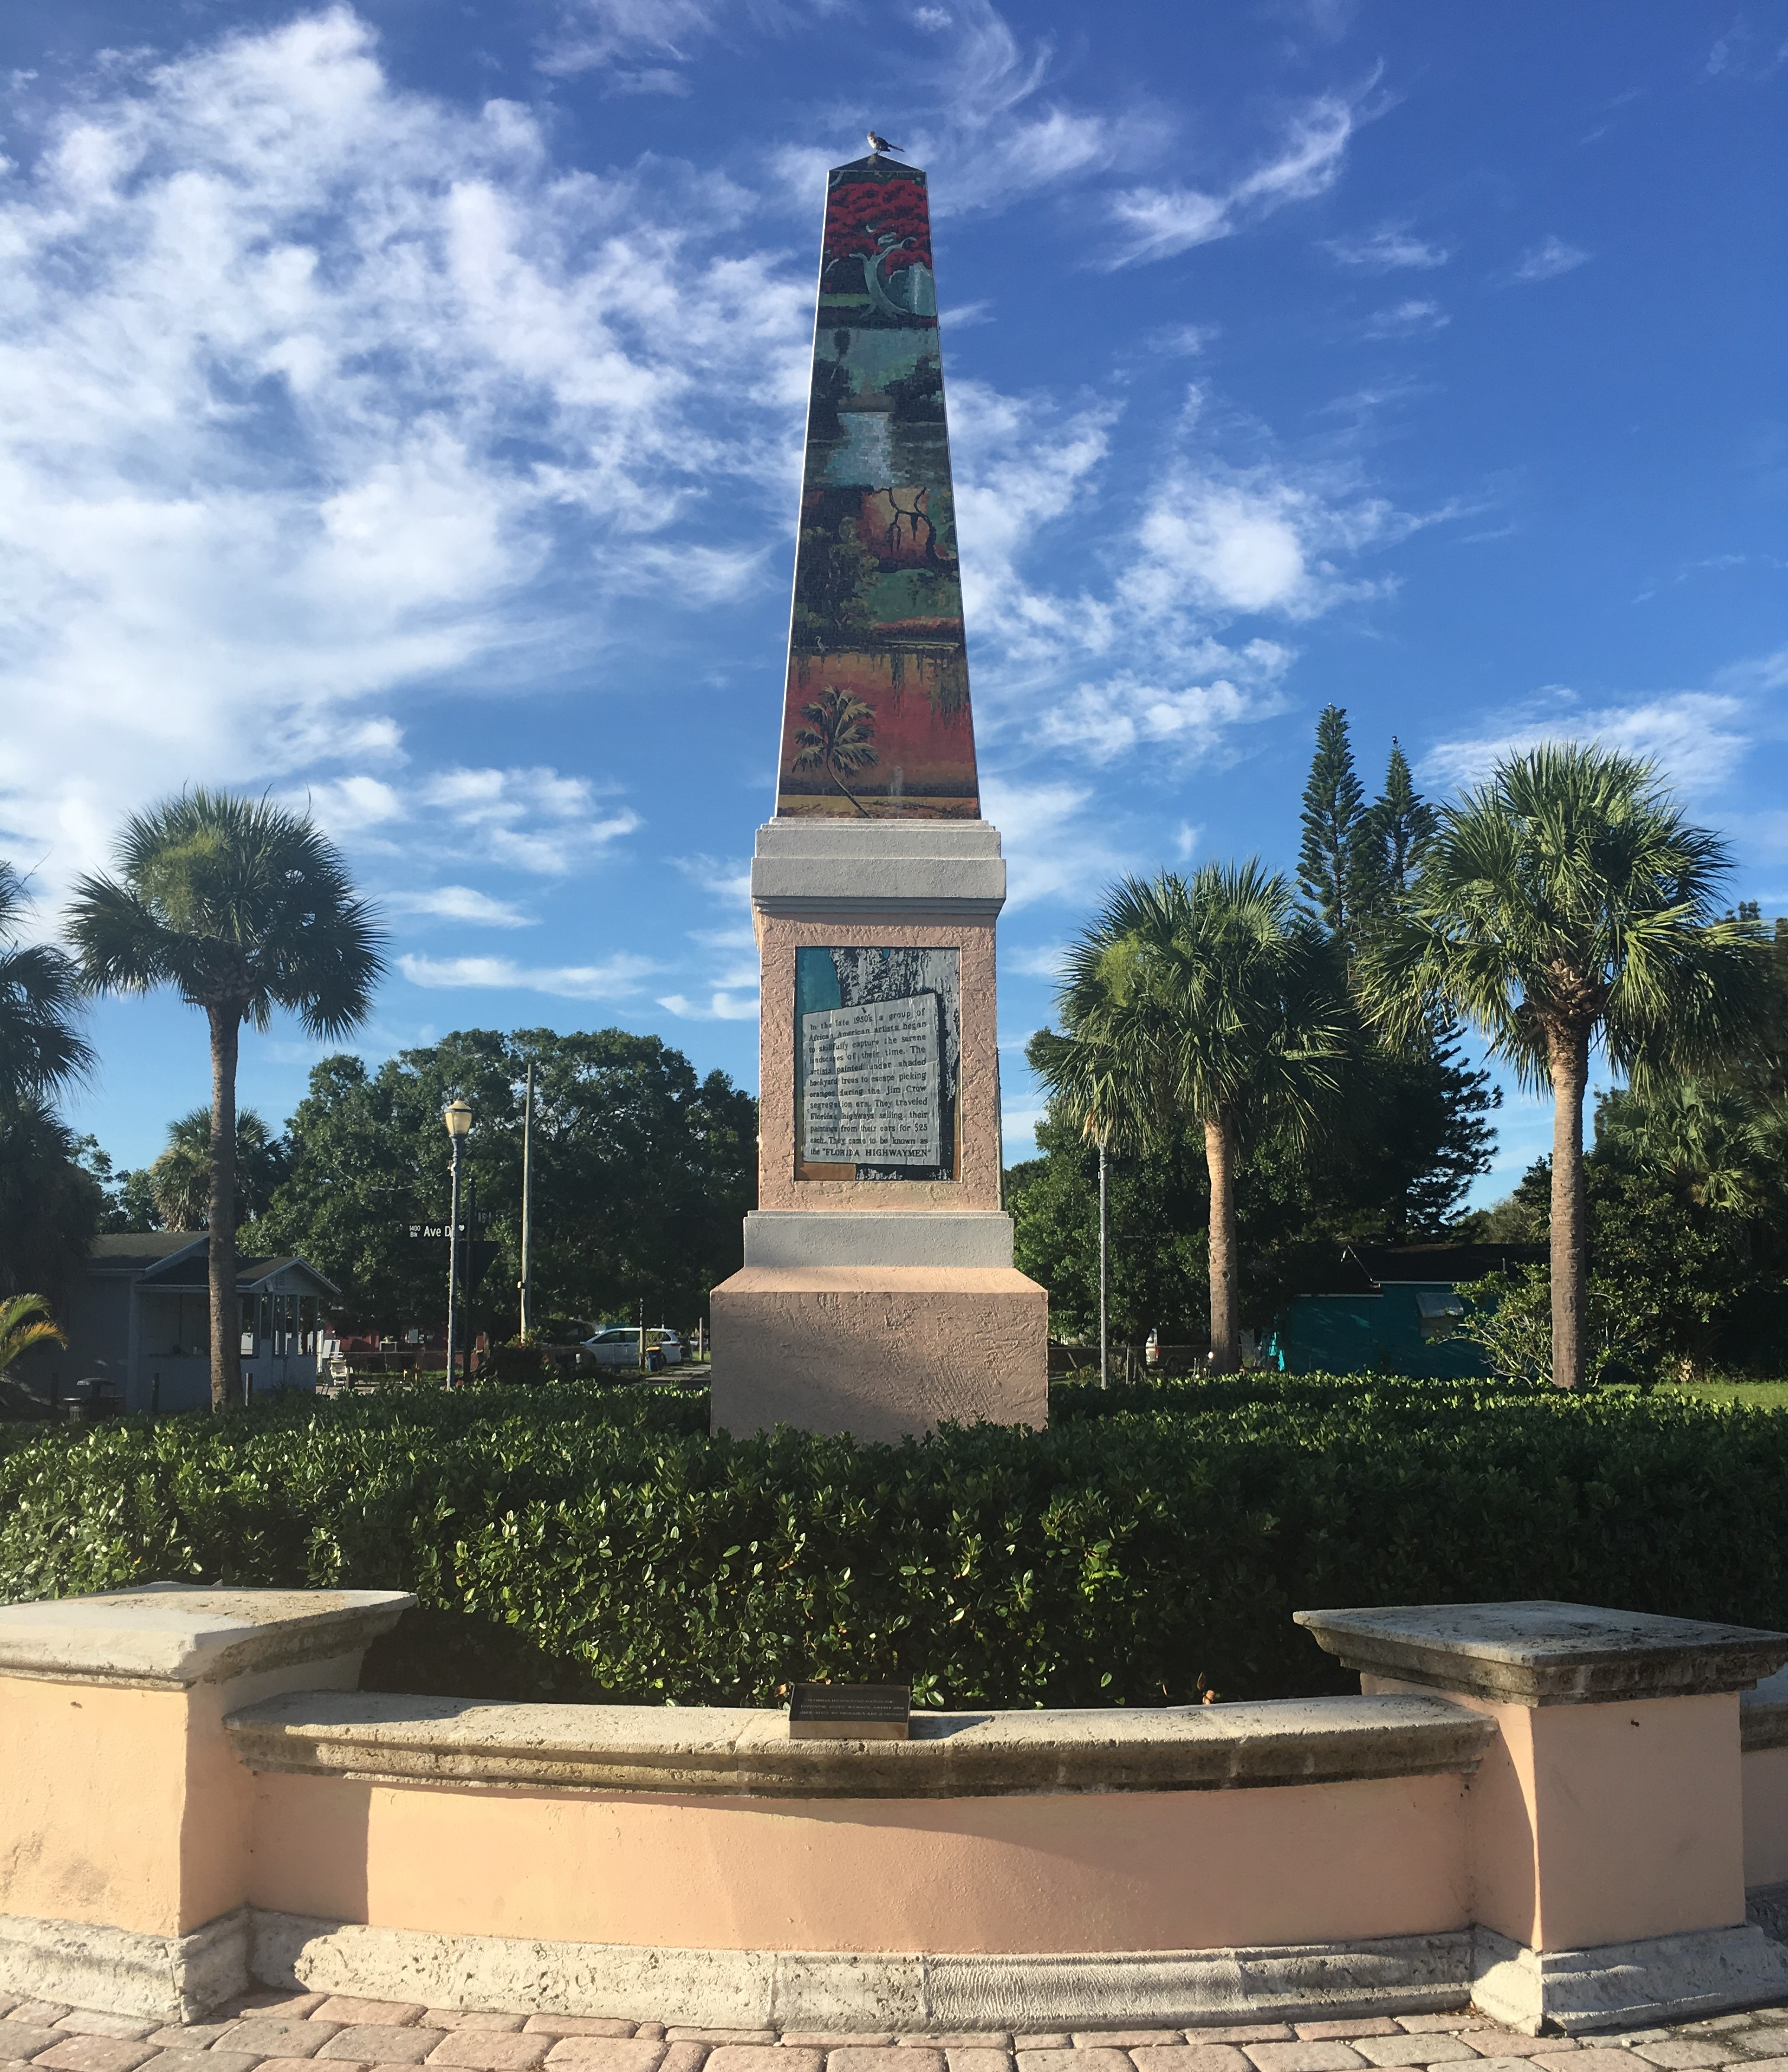 The Highwaymen Trail Obelisk, Fort Pierce, Florida